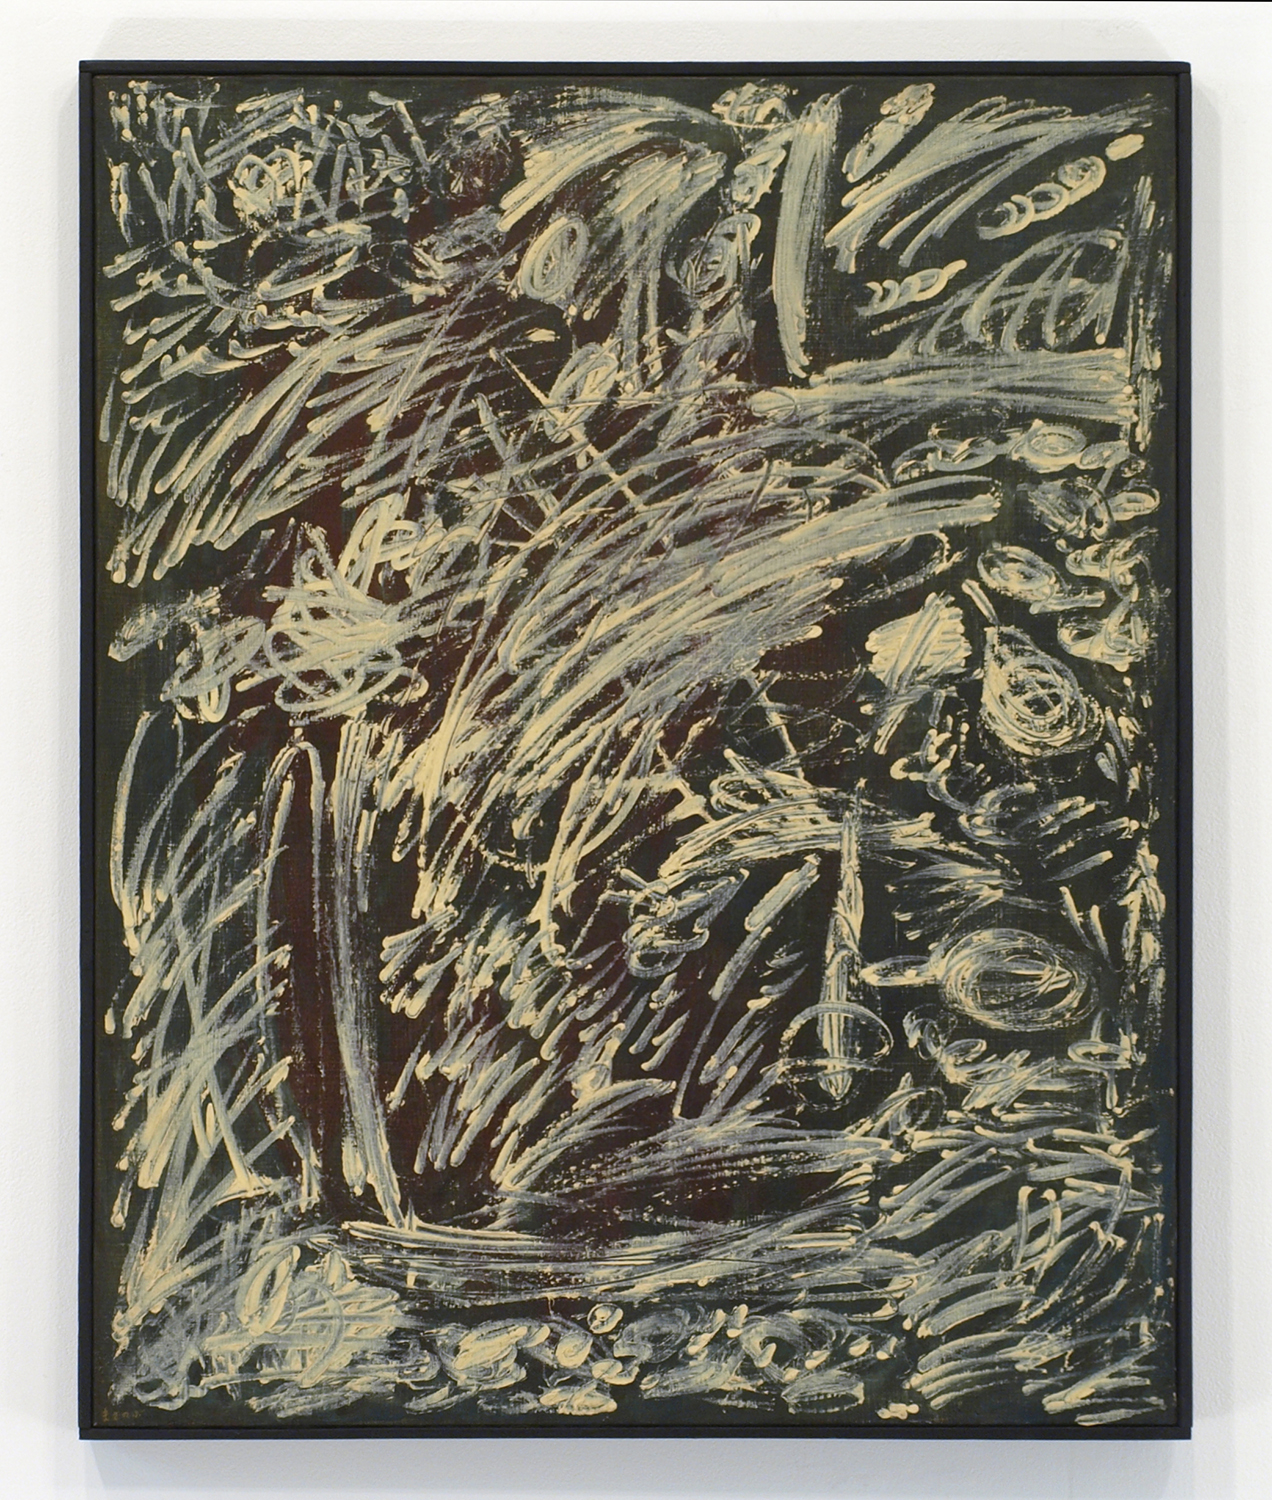 Oil on canvas|90.9 x 72.7 cm|1959.August